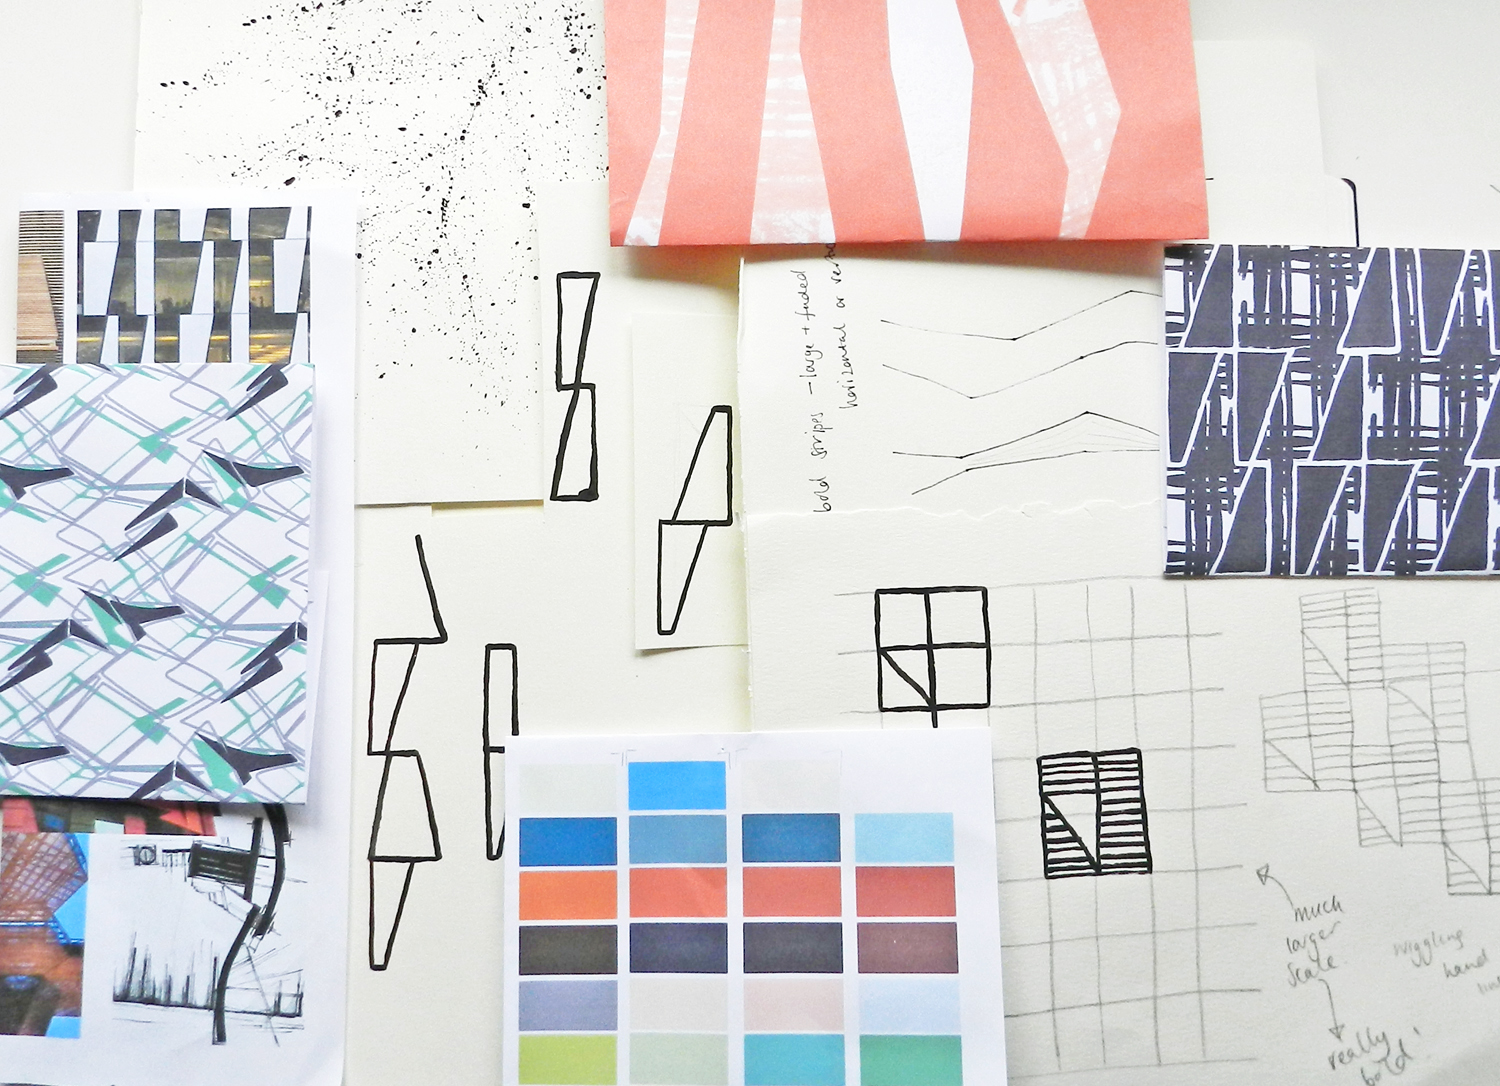 new products, Annabel Perrin, geometric, pastels, textile design